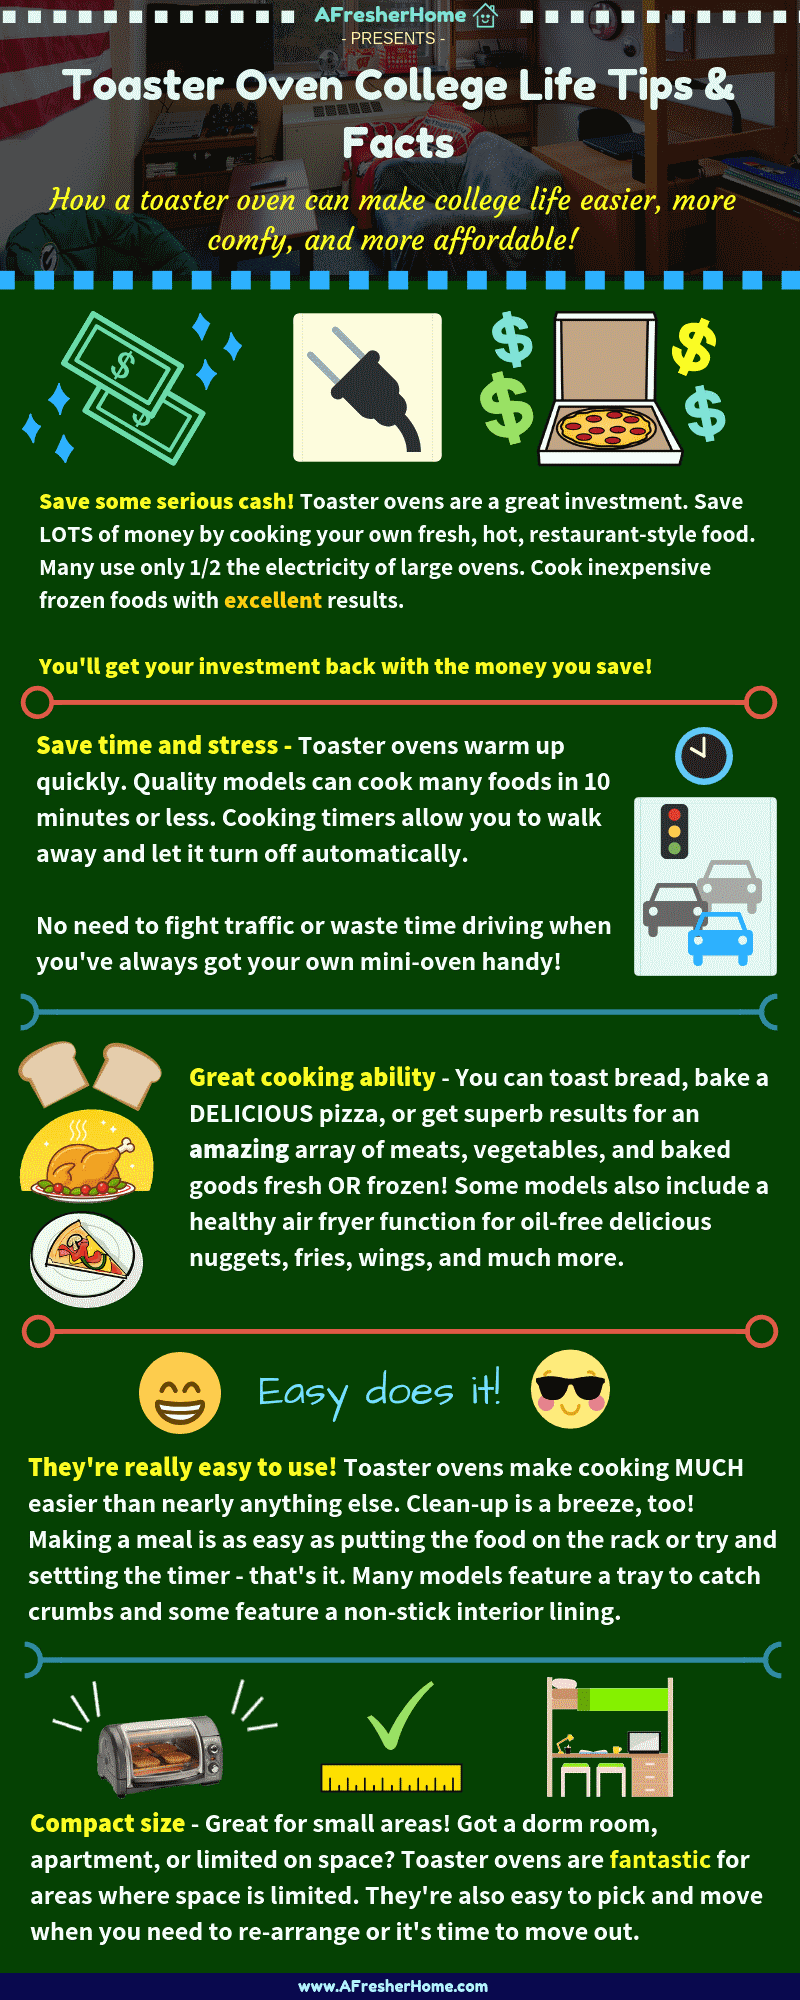 Toaster ovens for college tips and facts infographic